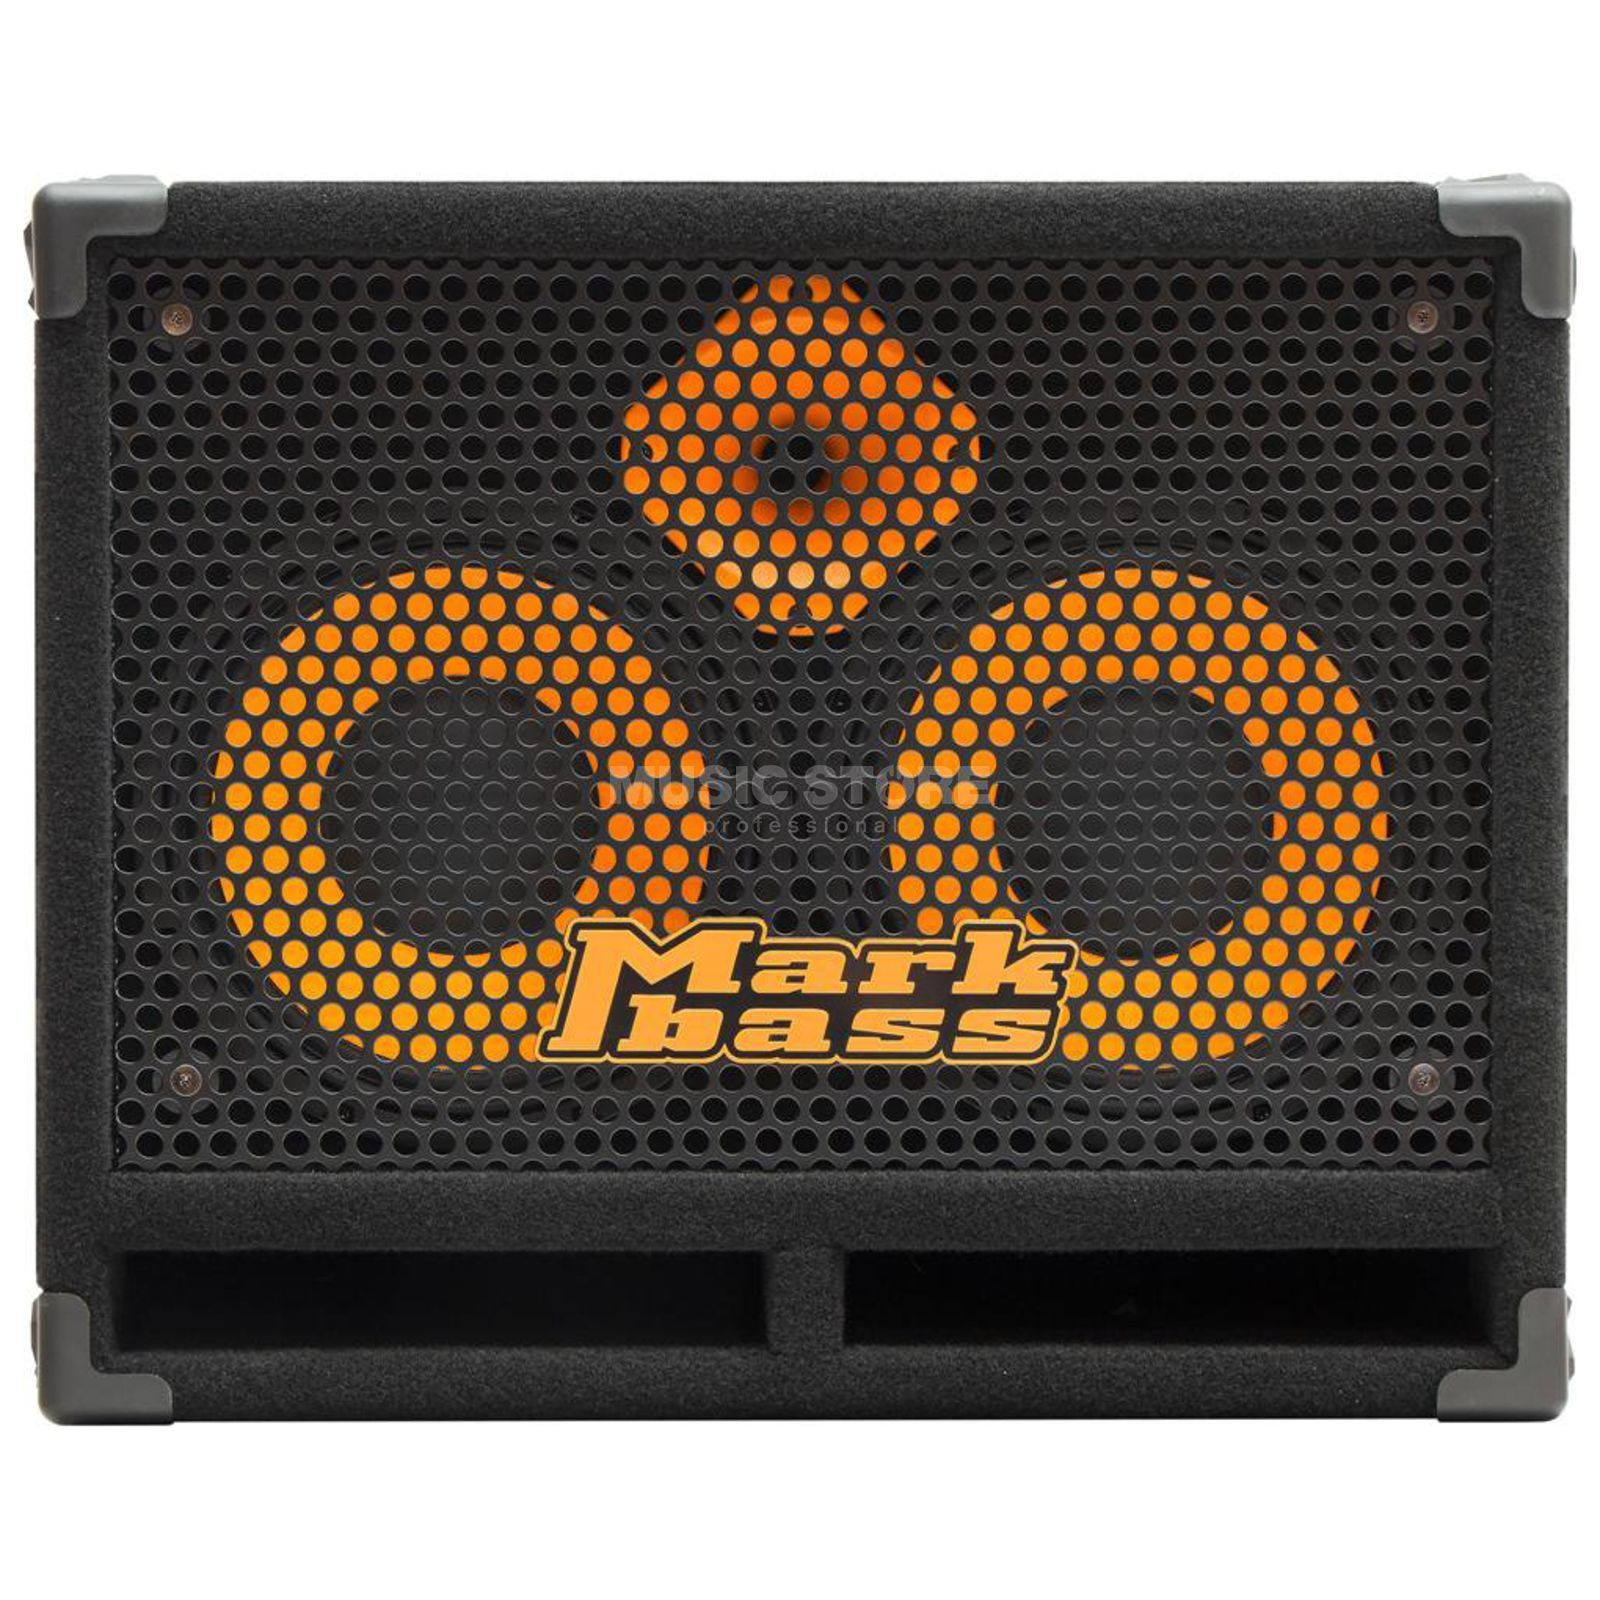 Markbass standaard 102 HF 8 Ohm Cabinet  Productafbeelding